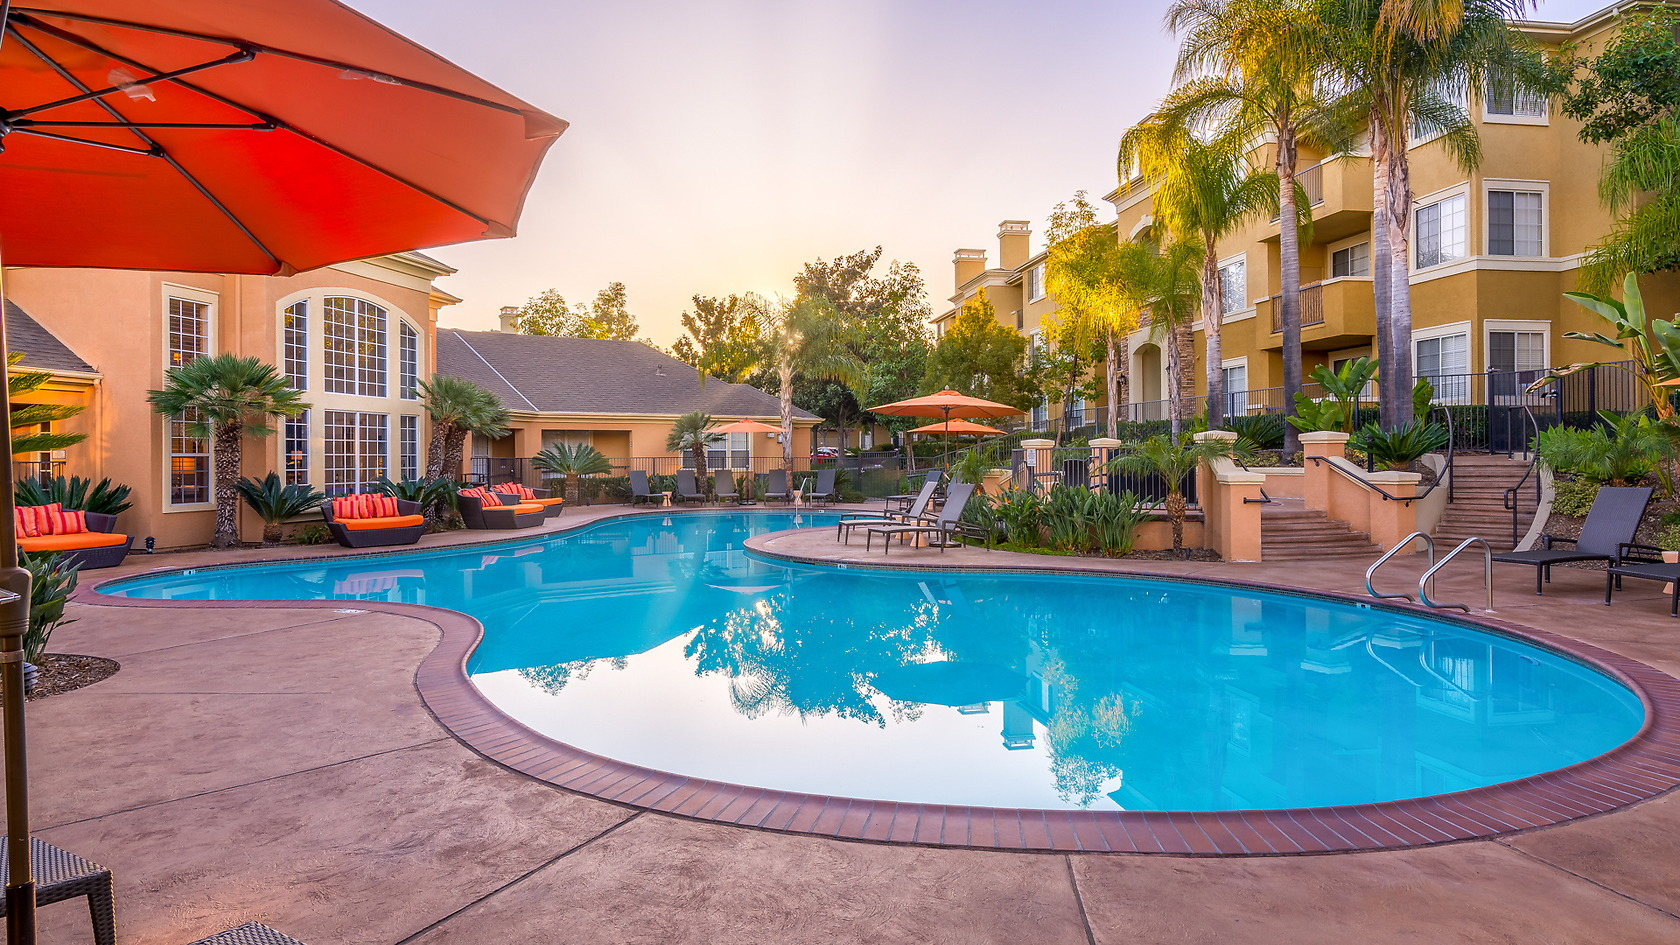 Cambridge Park Furnished Rental-Sample Image of San Diego CA Intern Home